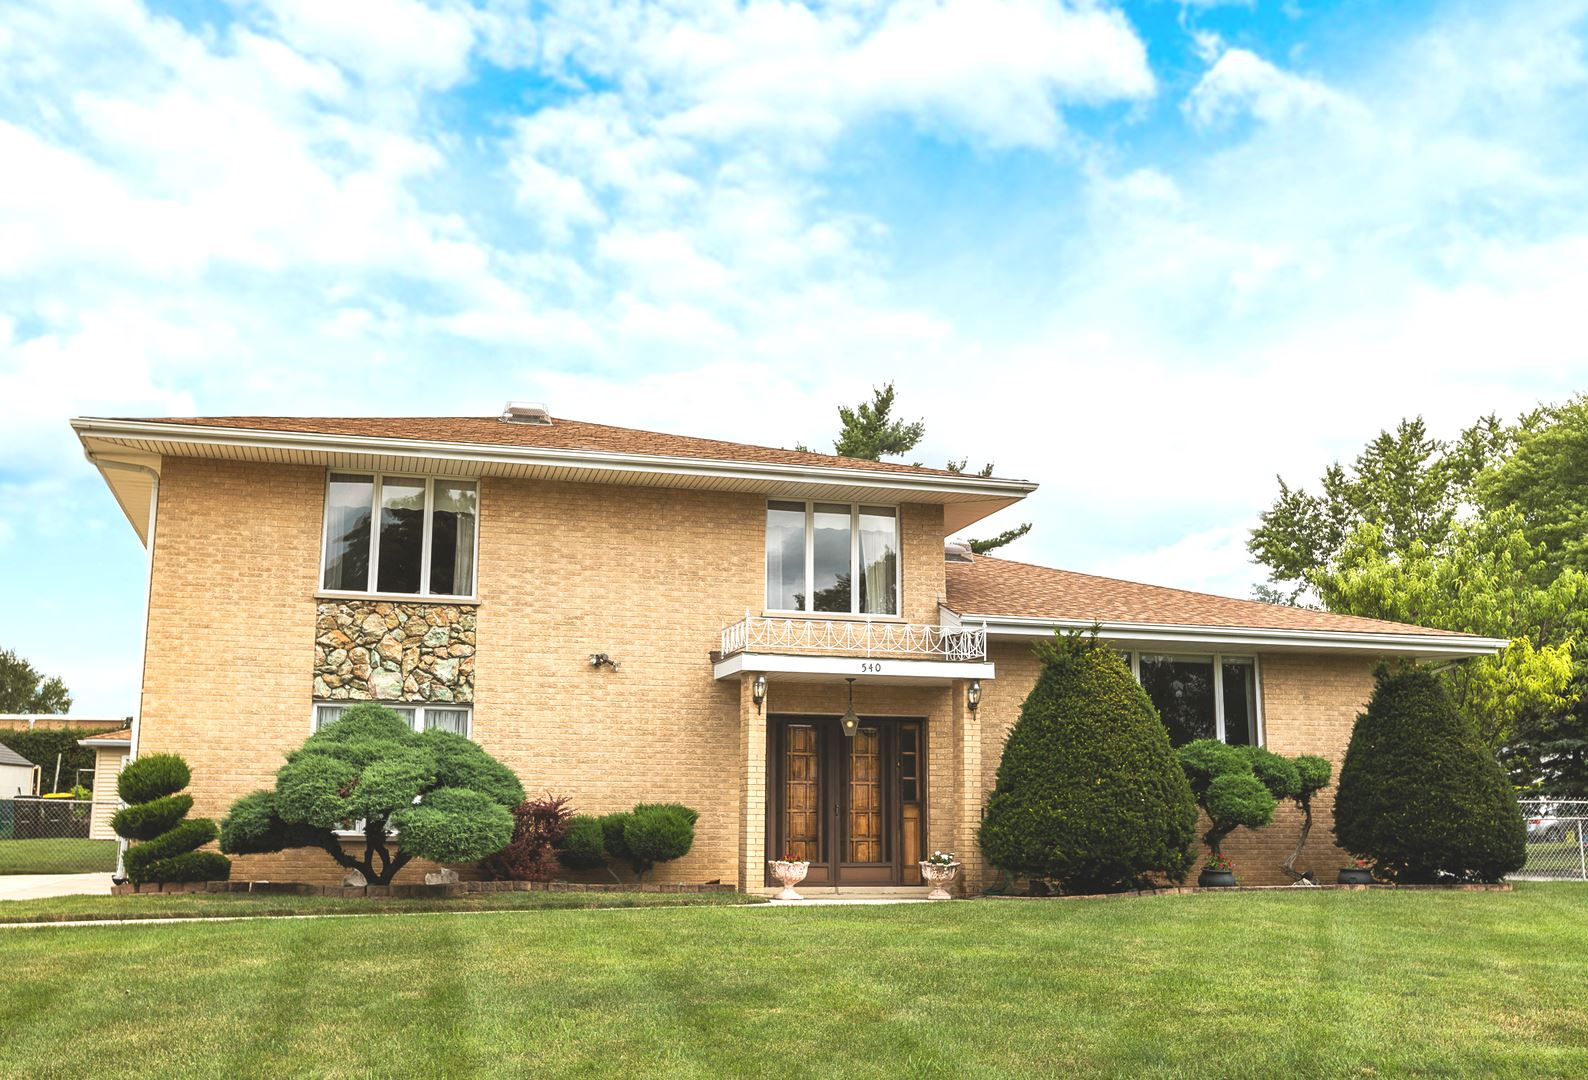 540 Orchard Terrace, Roselle, IL 60172 - #: 10780713